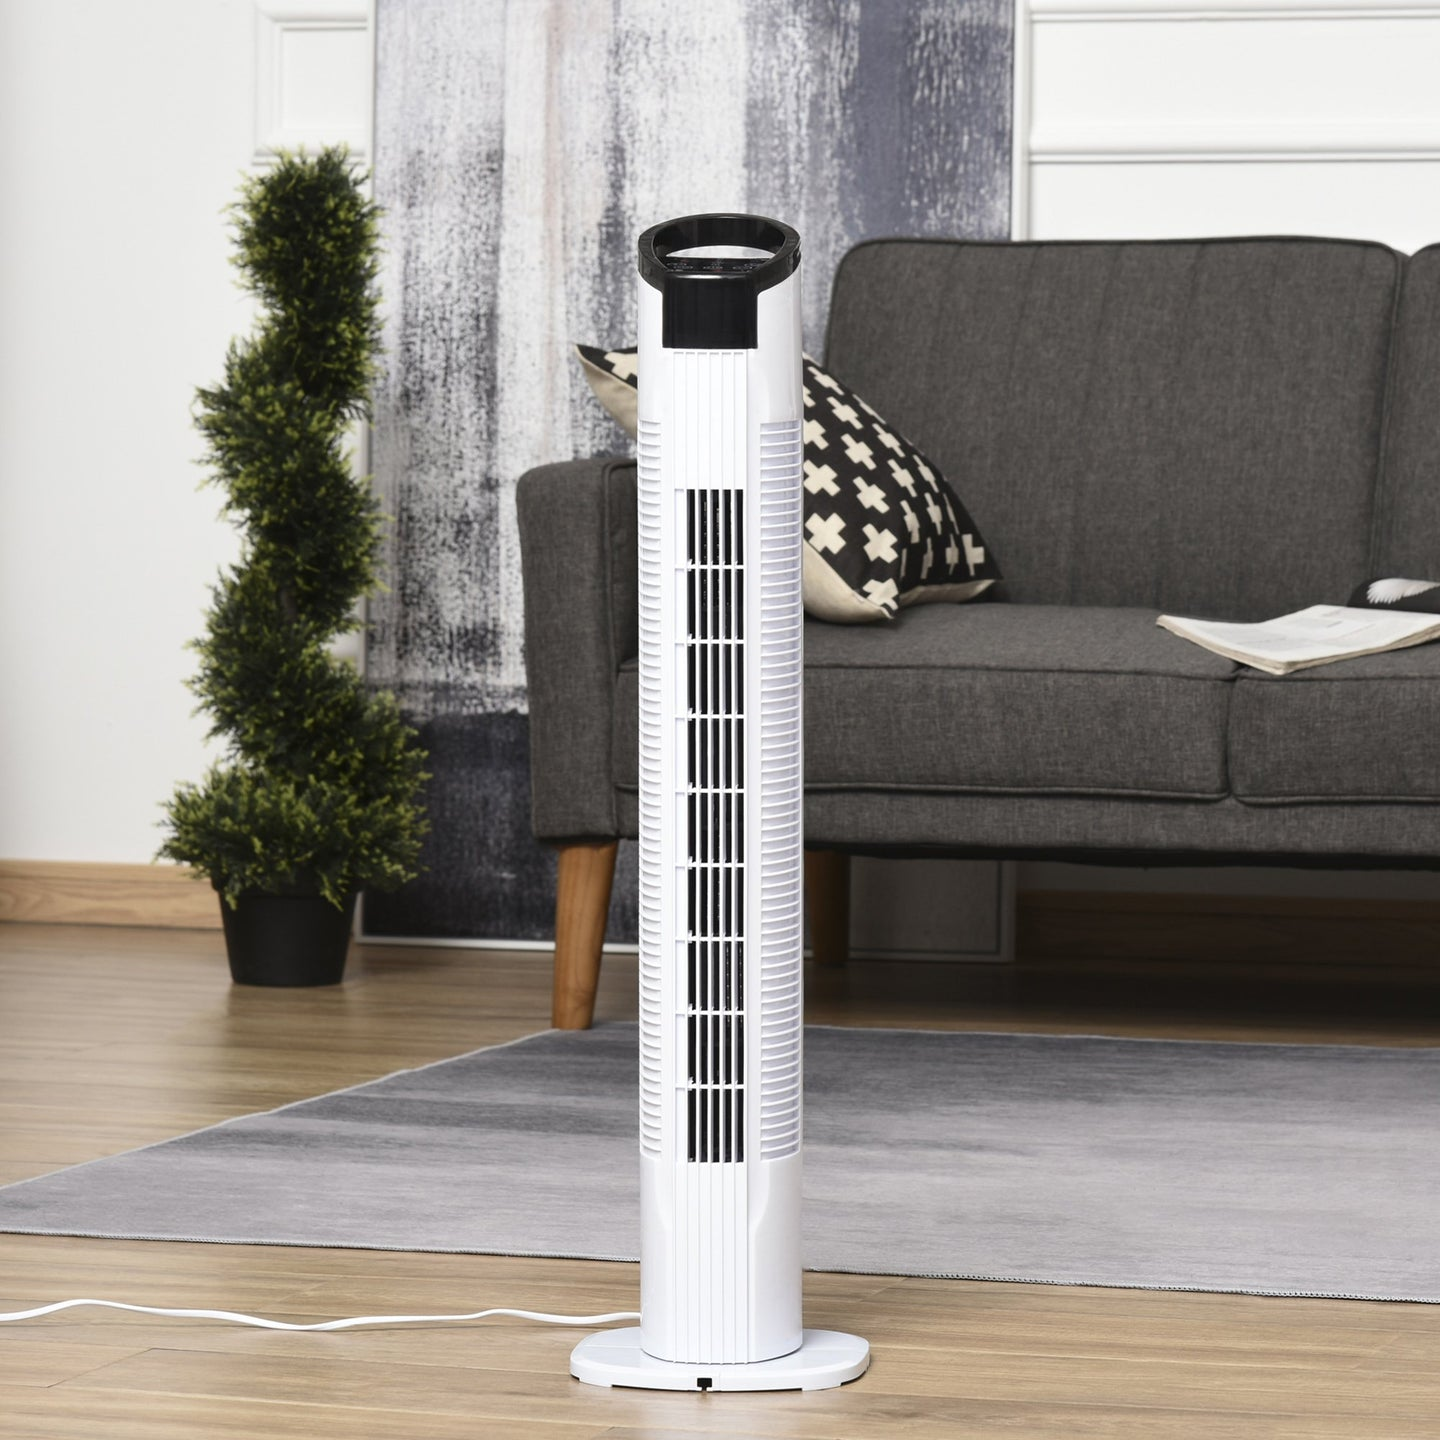 HOMCOM Freestanding Tower Fan, 3 Speed 3 Mode, 7.5h Timer, 70 Degree Oscillation, LED Panel, 5M Remote Controller, Black and White